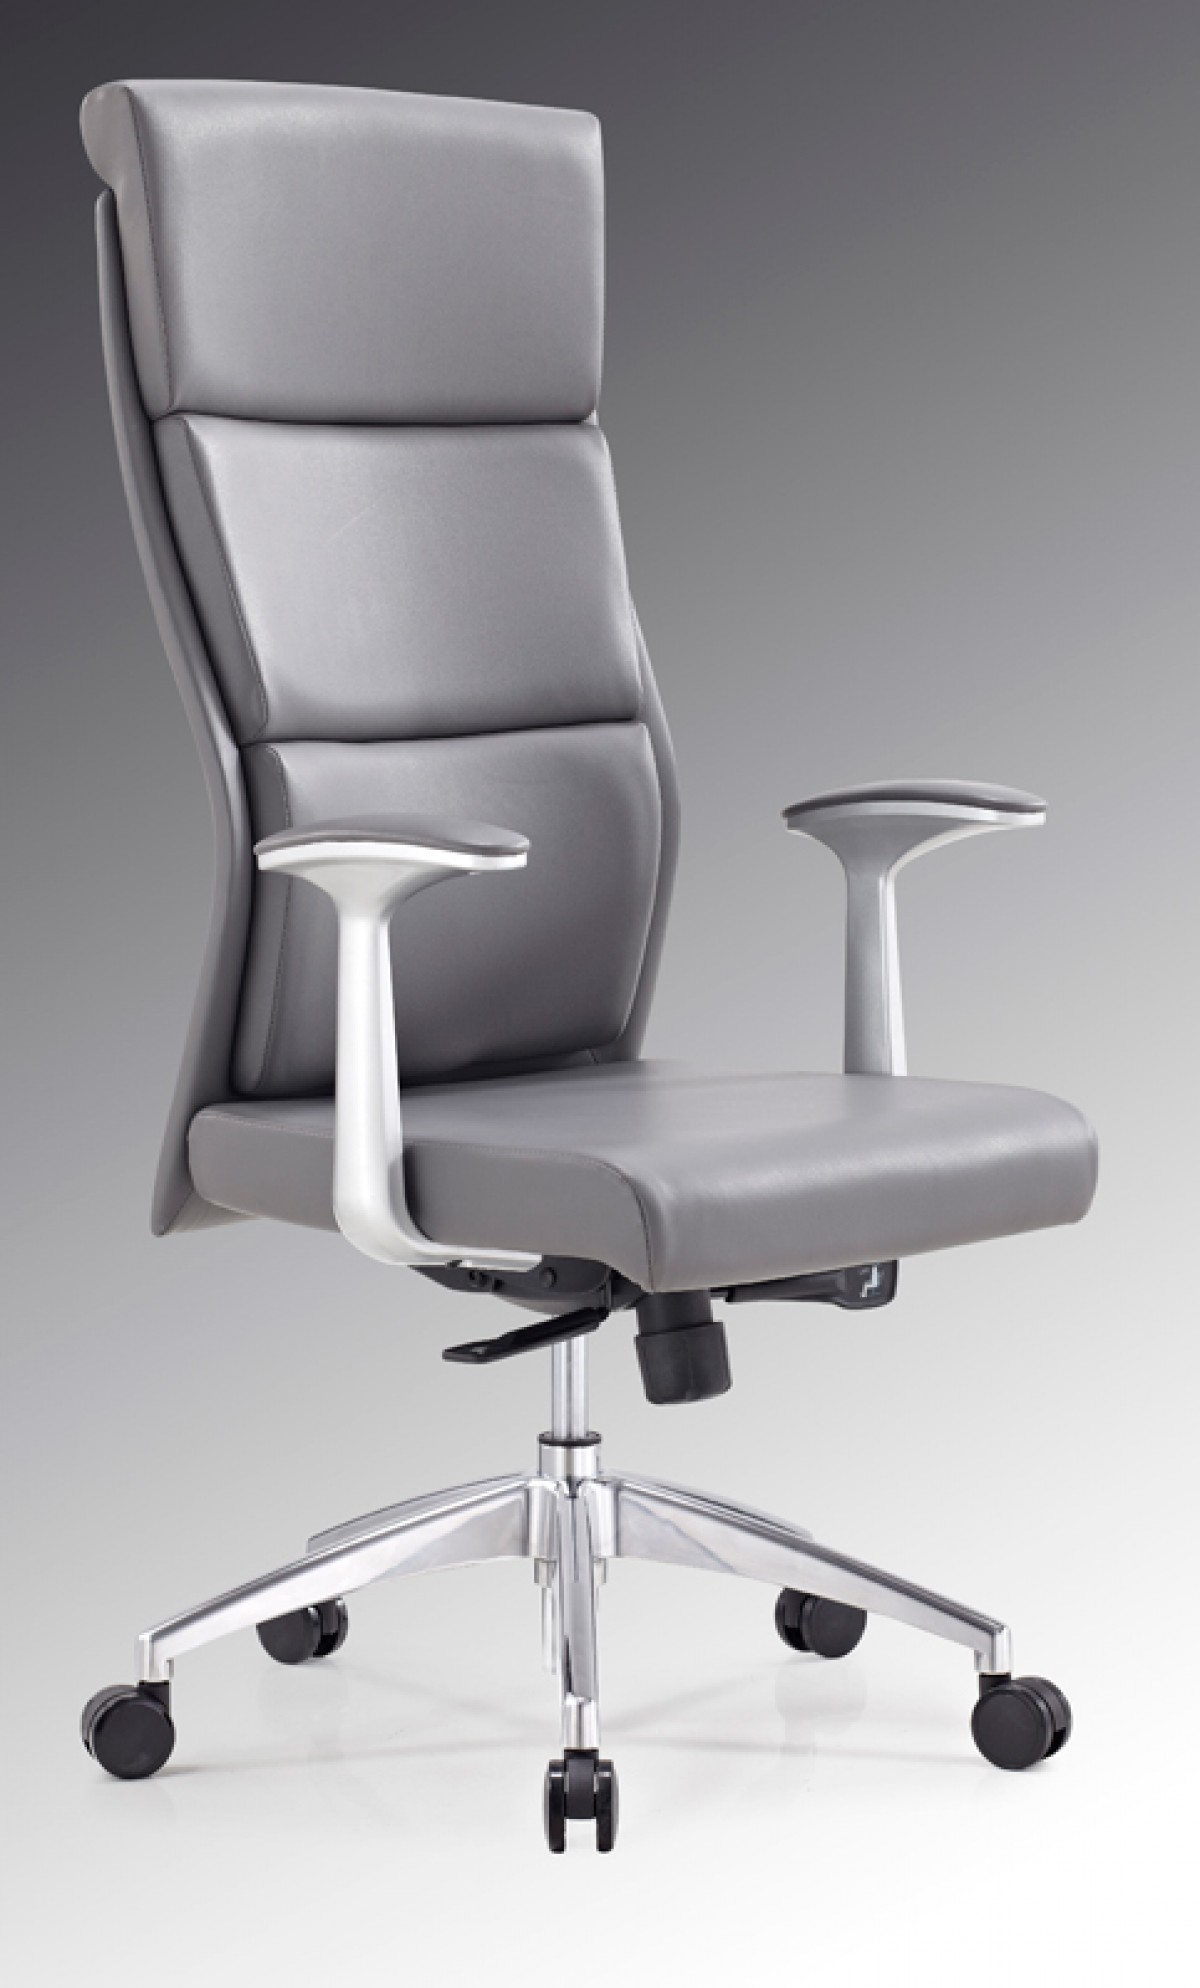 Modrest Ellison Modern Grey High Back Office Chair Office Chairs Office